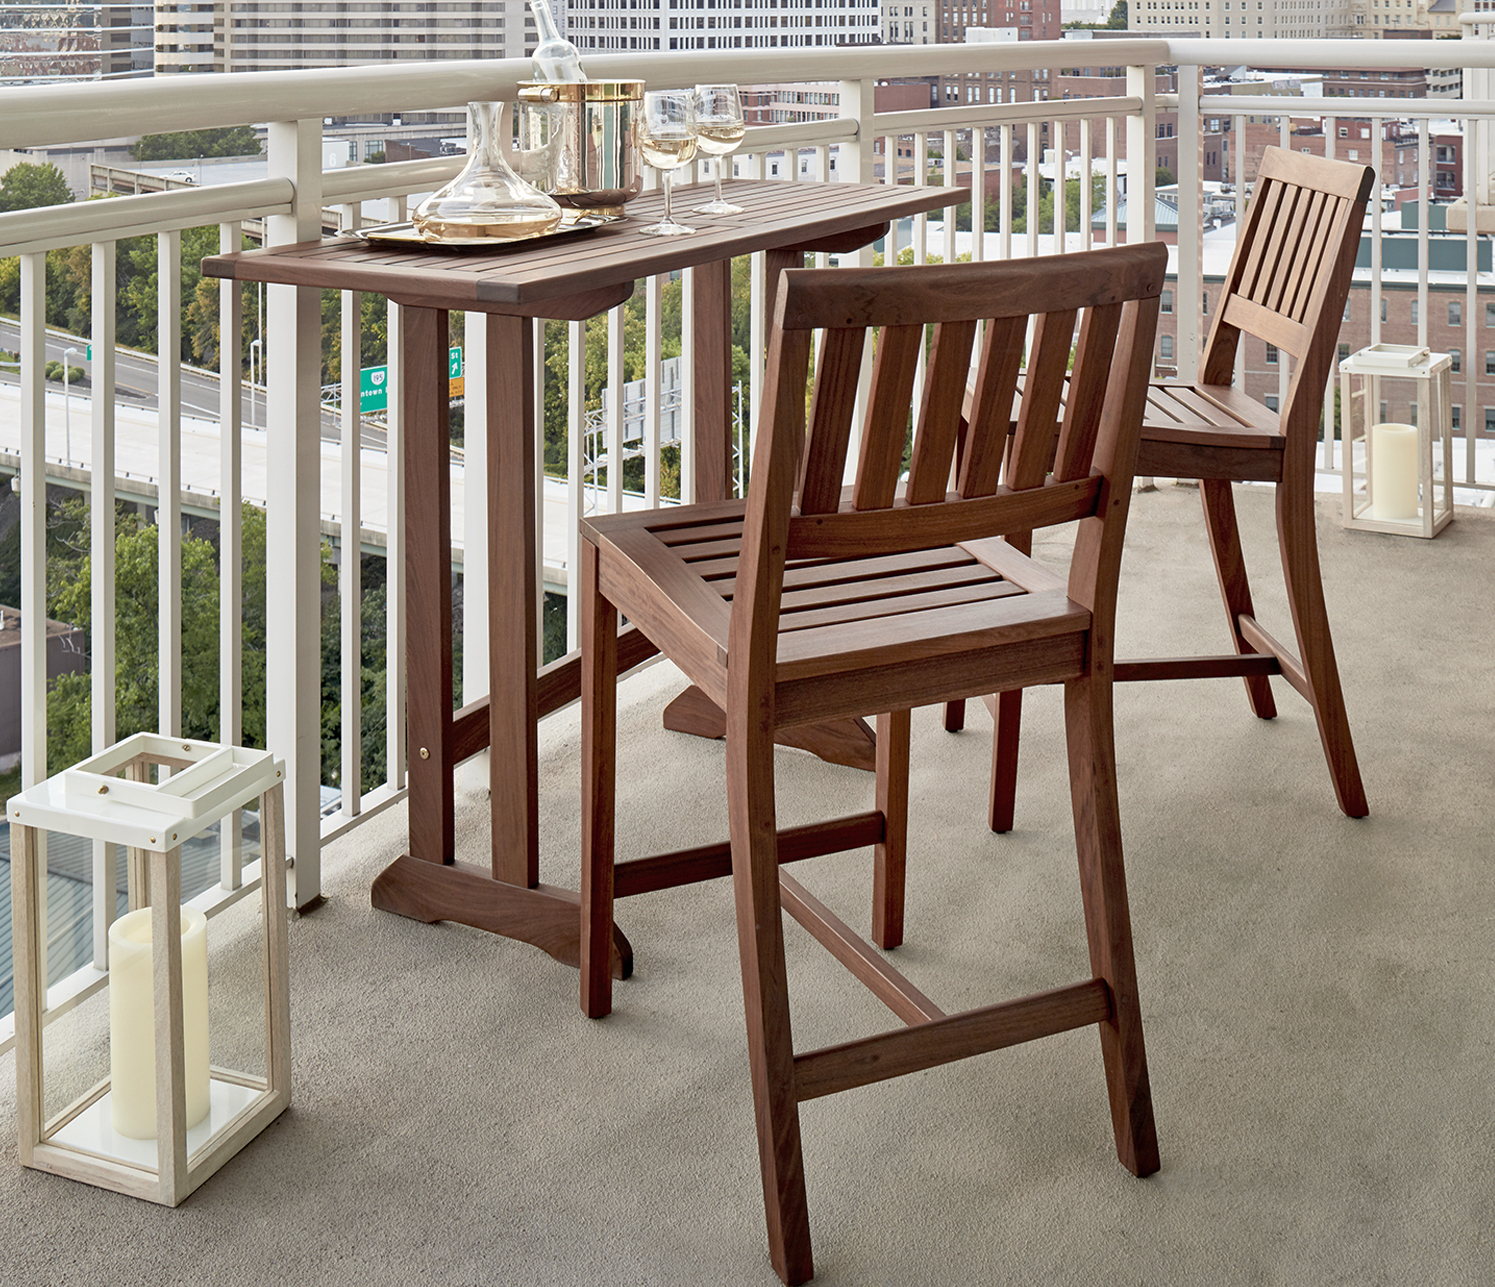 condo outdoor furniture dining table balcony. There Are Stylish Outdoor Dining Tables For Balconies And Other Smaller Spaces. (Richmond Table, $649 , Opal Counter-height Chair, $304, Condo Furniture Table Balcony